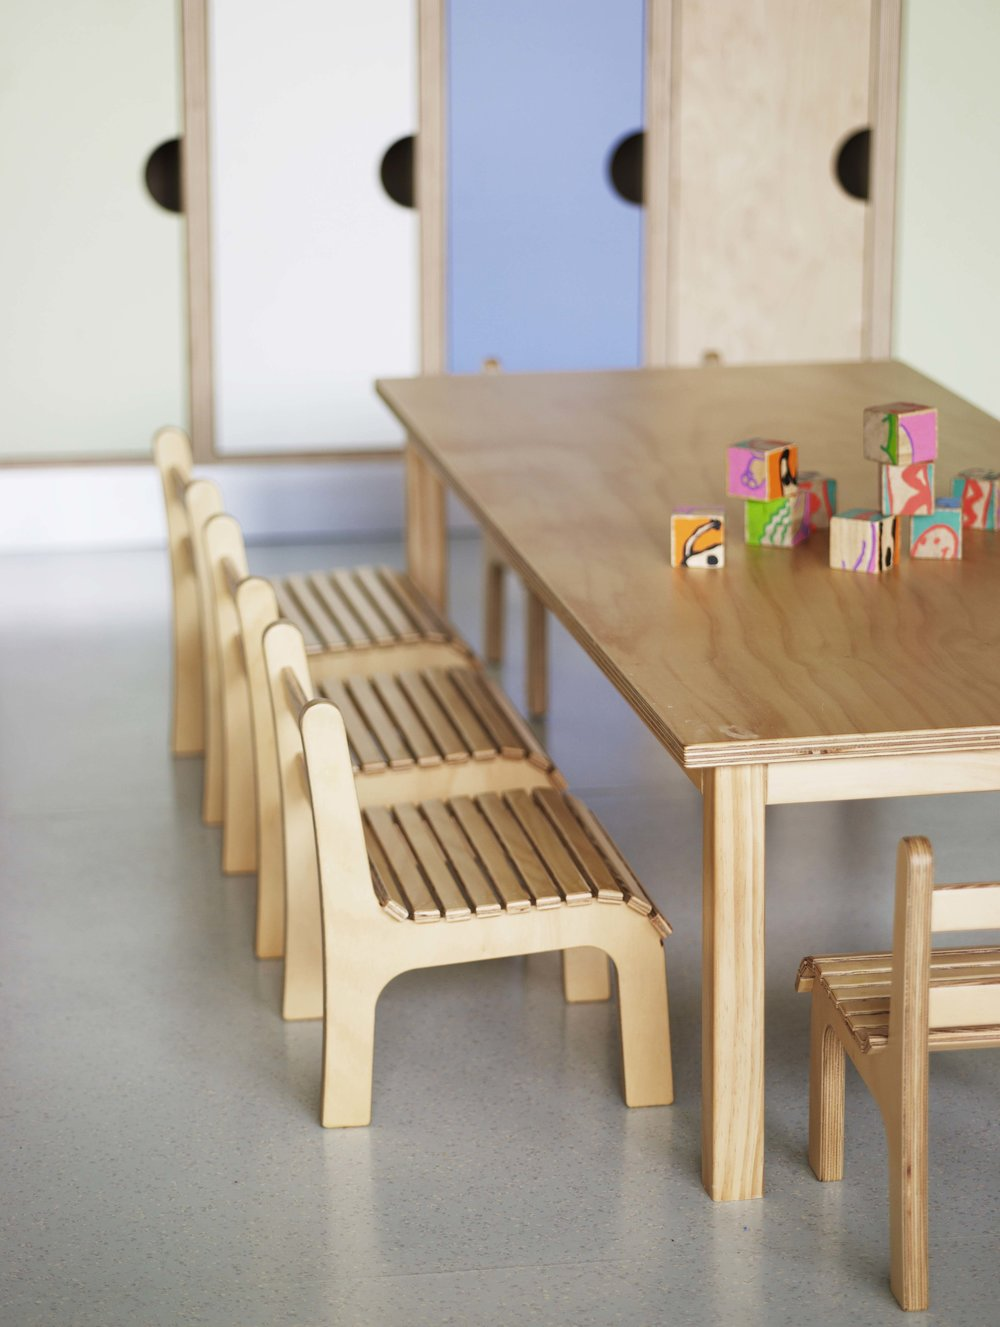 Montessori Schools Furniture by Koskela 001.jpg